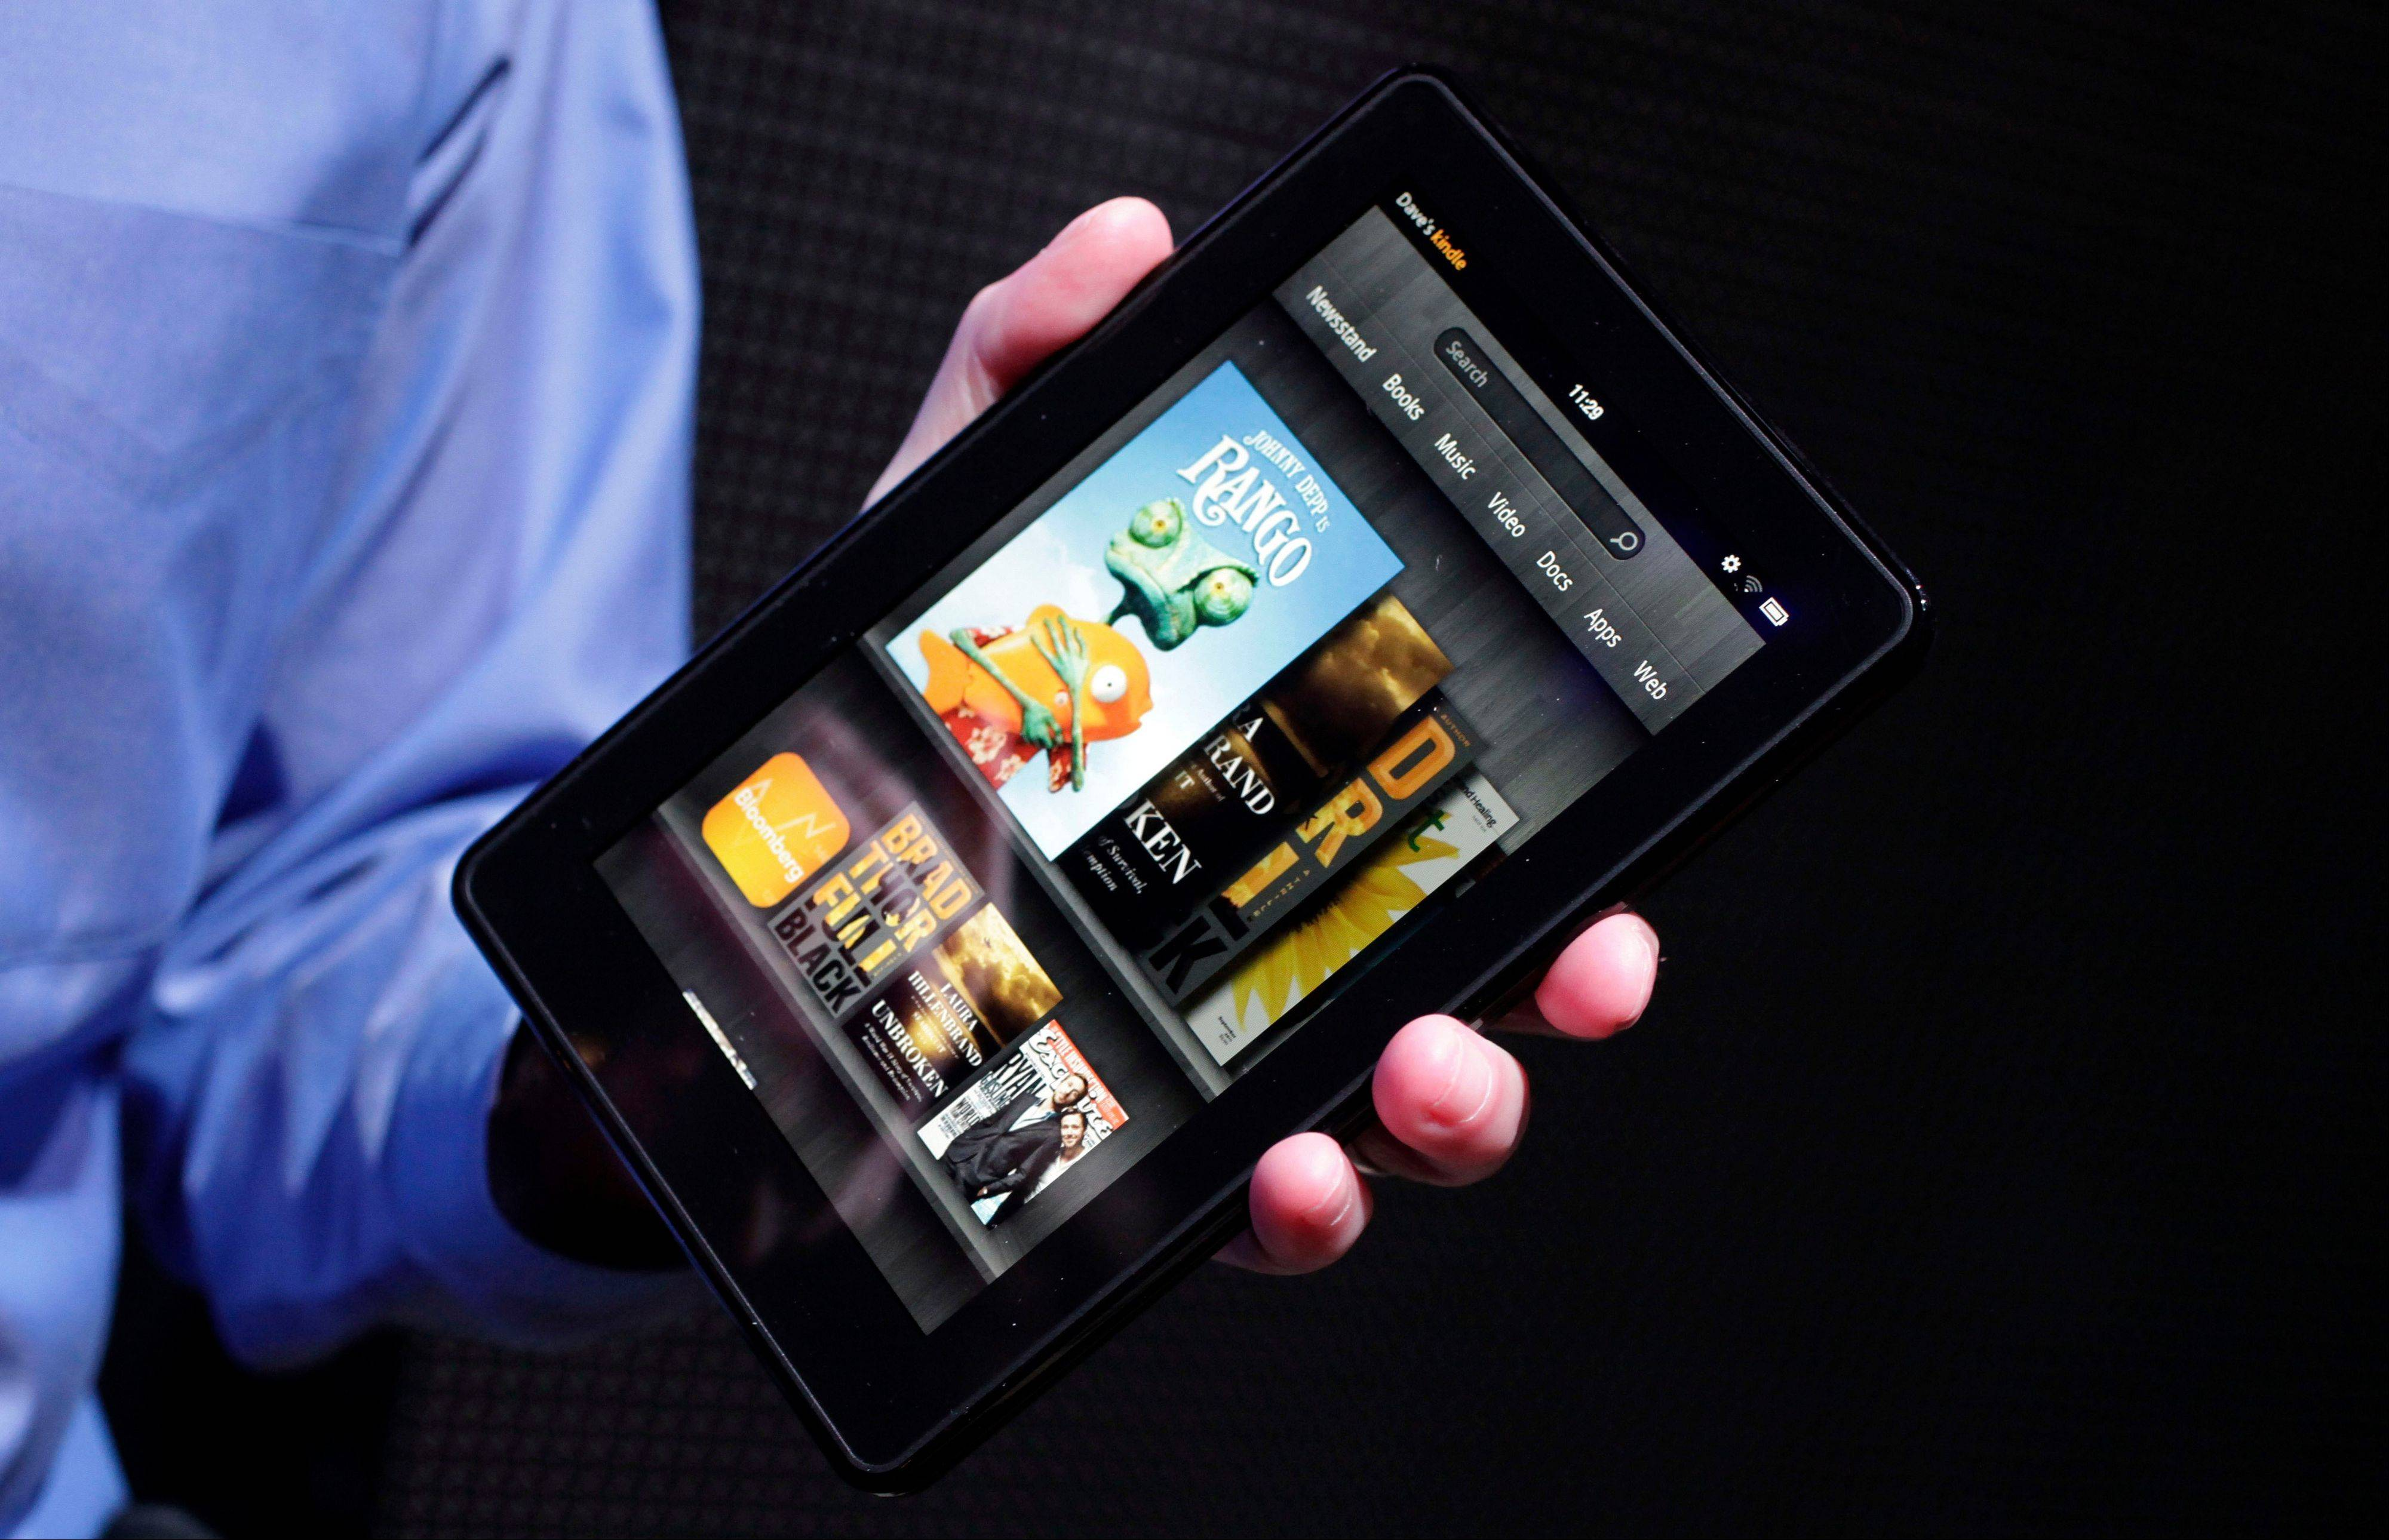 Amazon.com Inc. quenched the Kindle Fire on Aug. 30 saying its first tablet computer is now sold out. The Internet retailer has a news conference scheduled for next Thursday in Santa Monica, Calif. It's widely expected to reveal a new model of the Fire there.